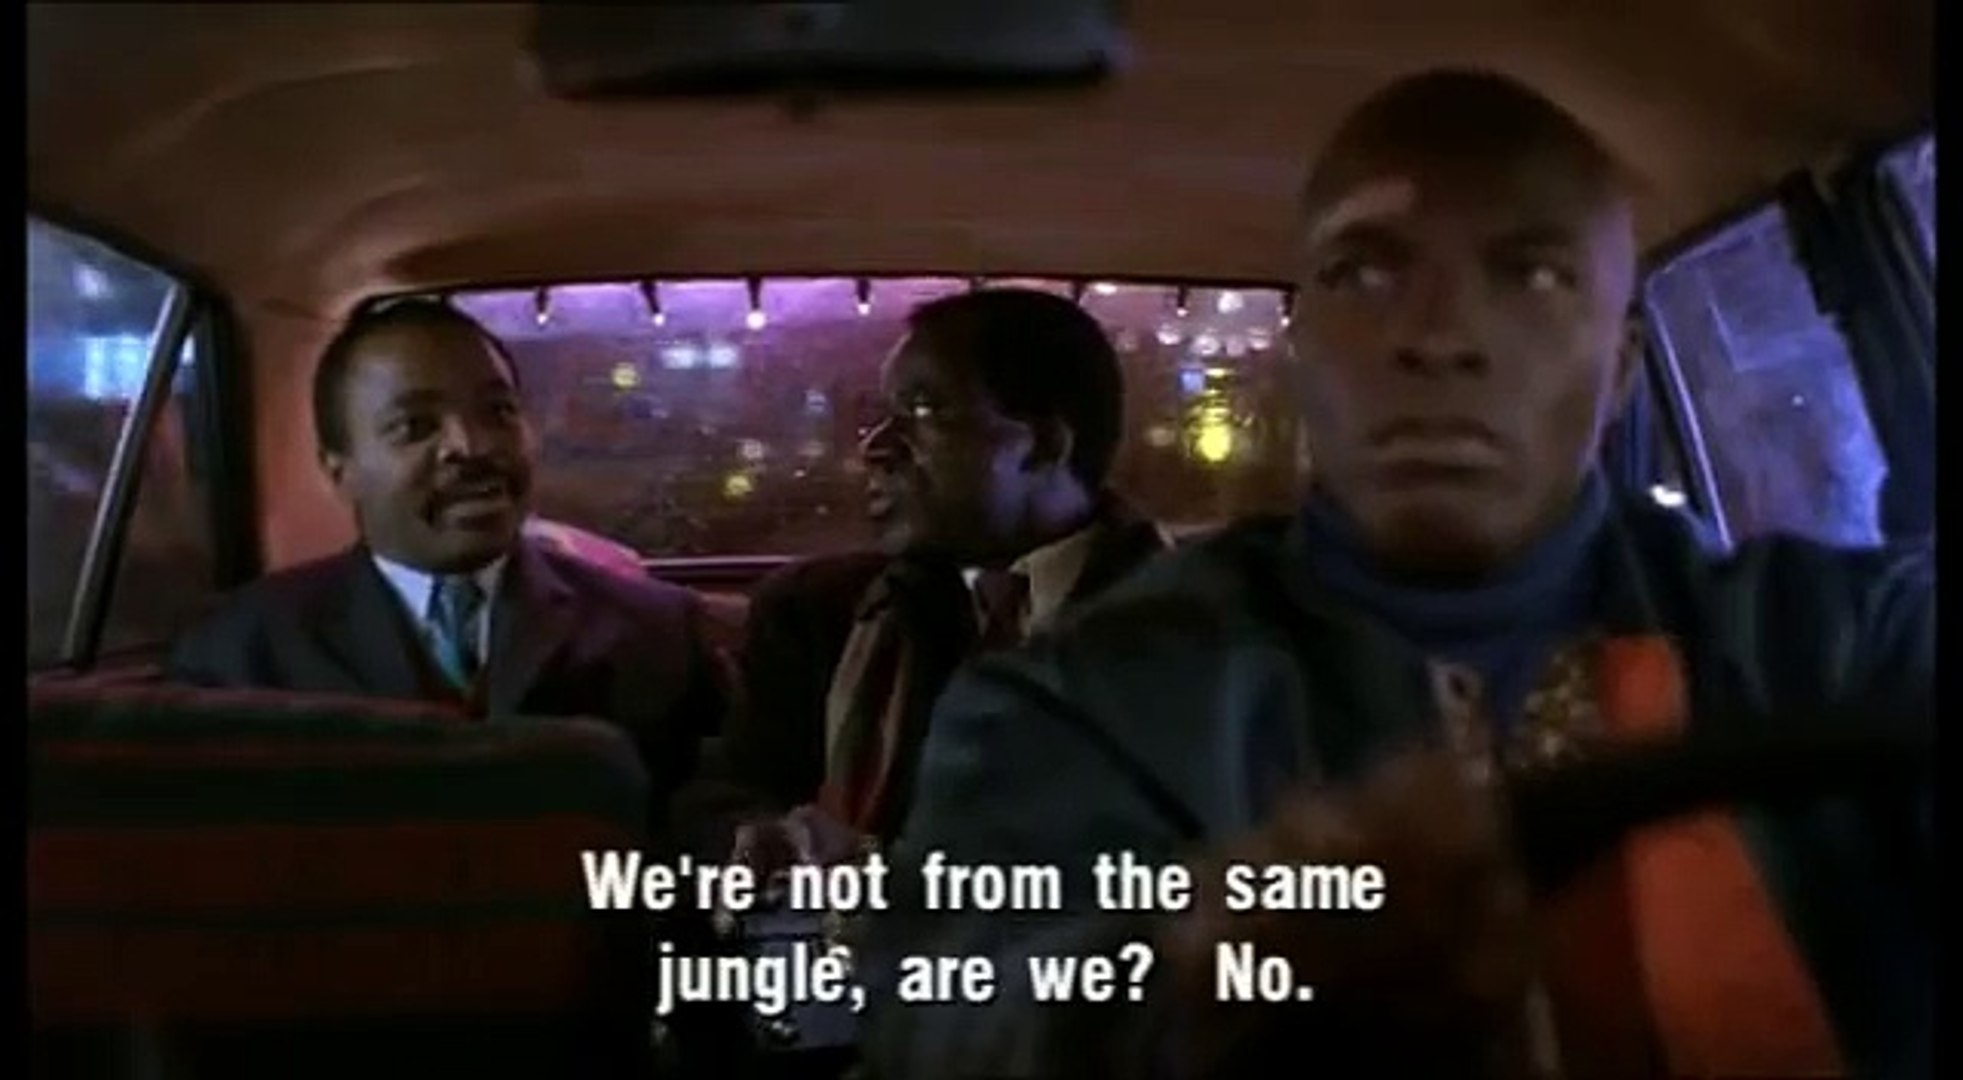 Two African diplomats mock an African cabby